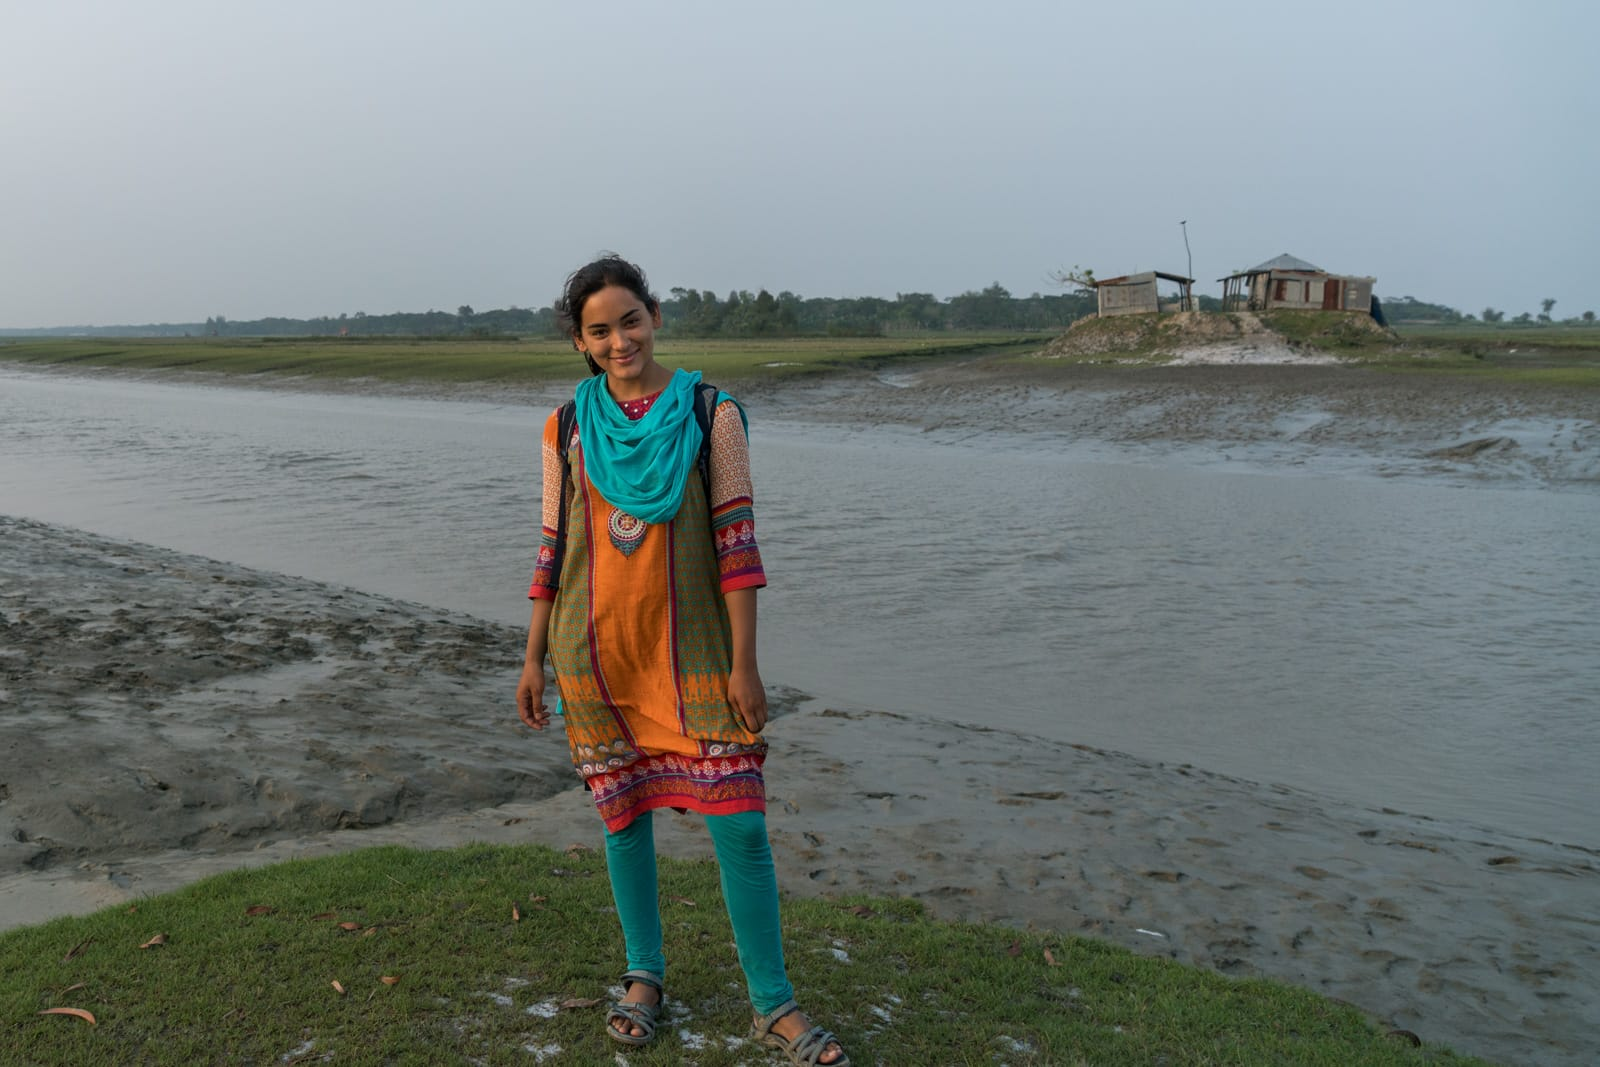 Where's your husband? A guide to female travel in Bangaldesh - Lost